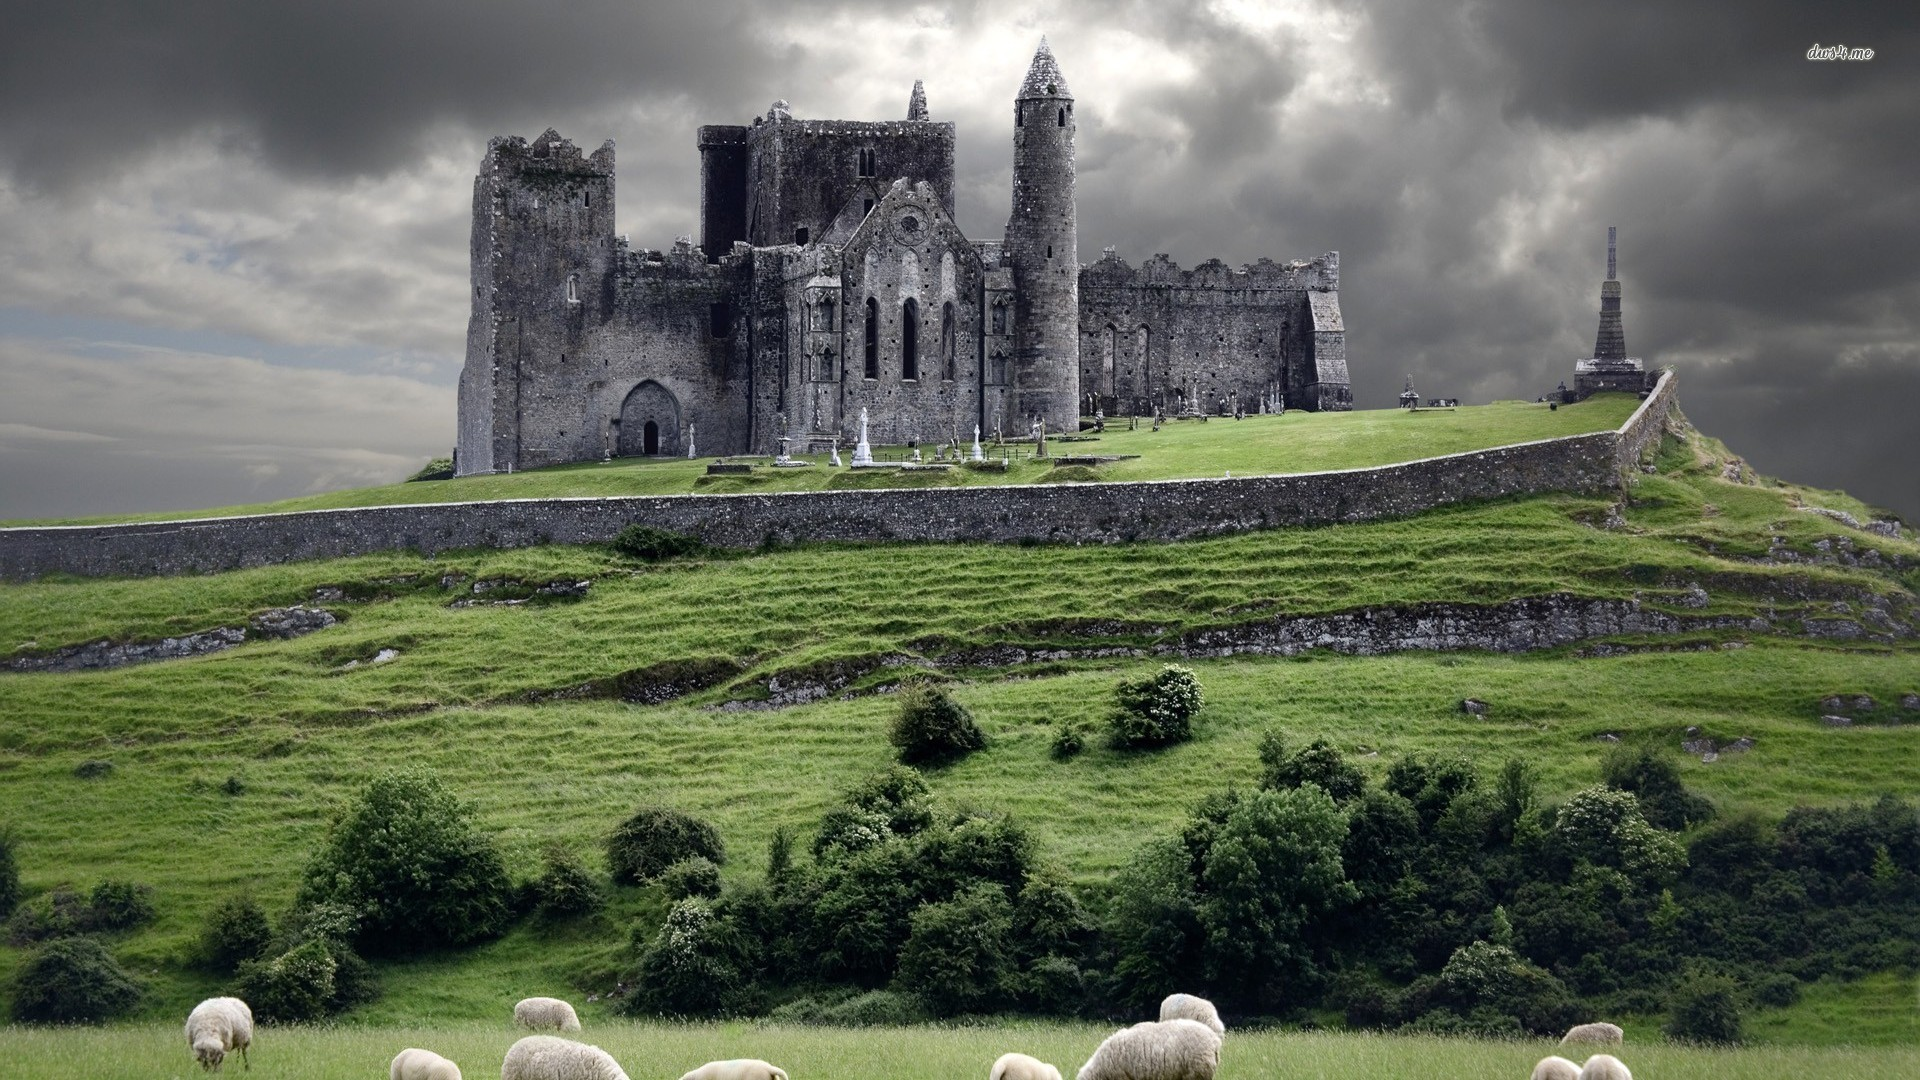 Irish Castle Wallpaper 51 images 1920x1080